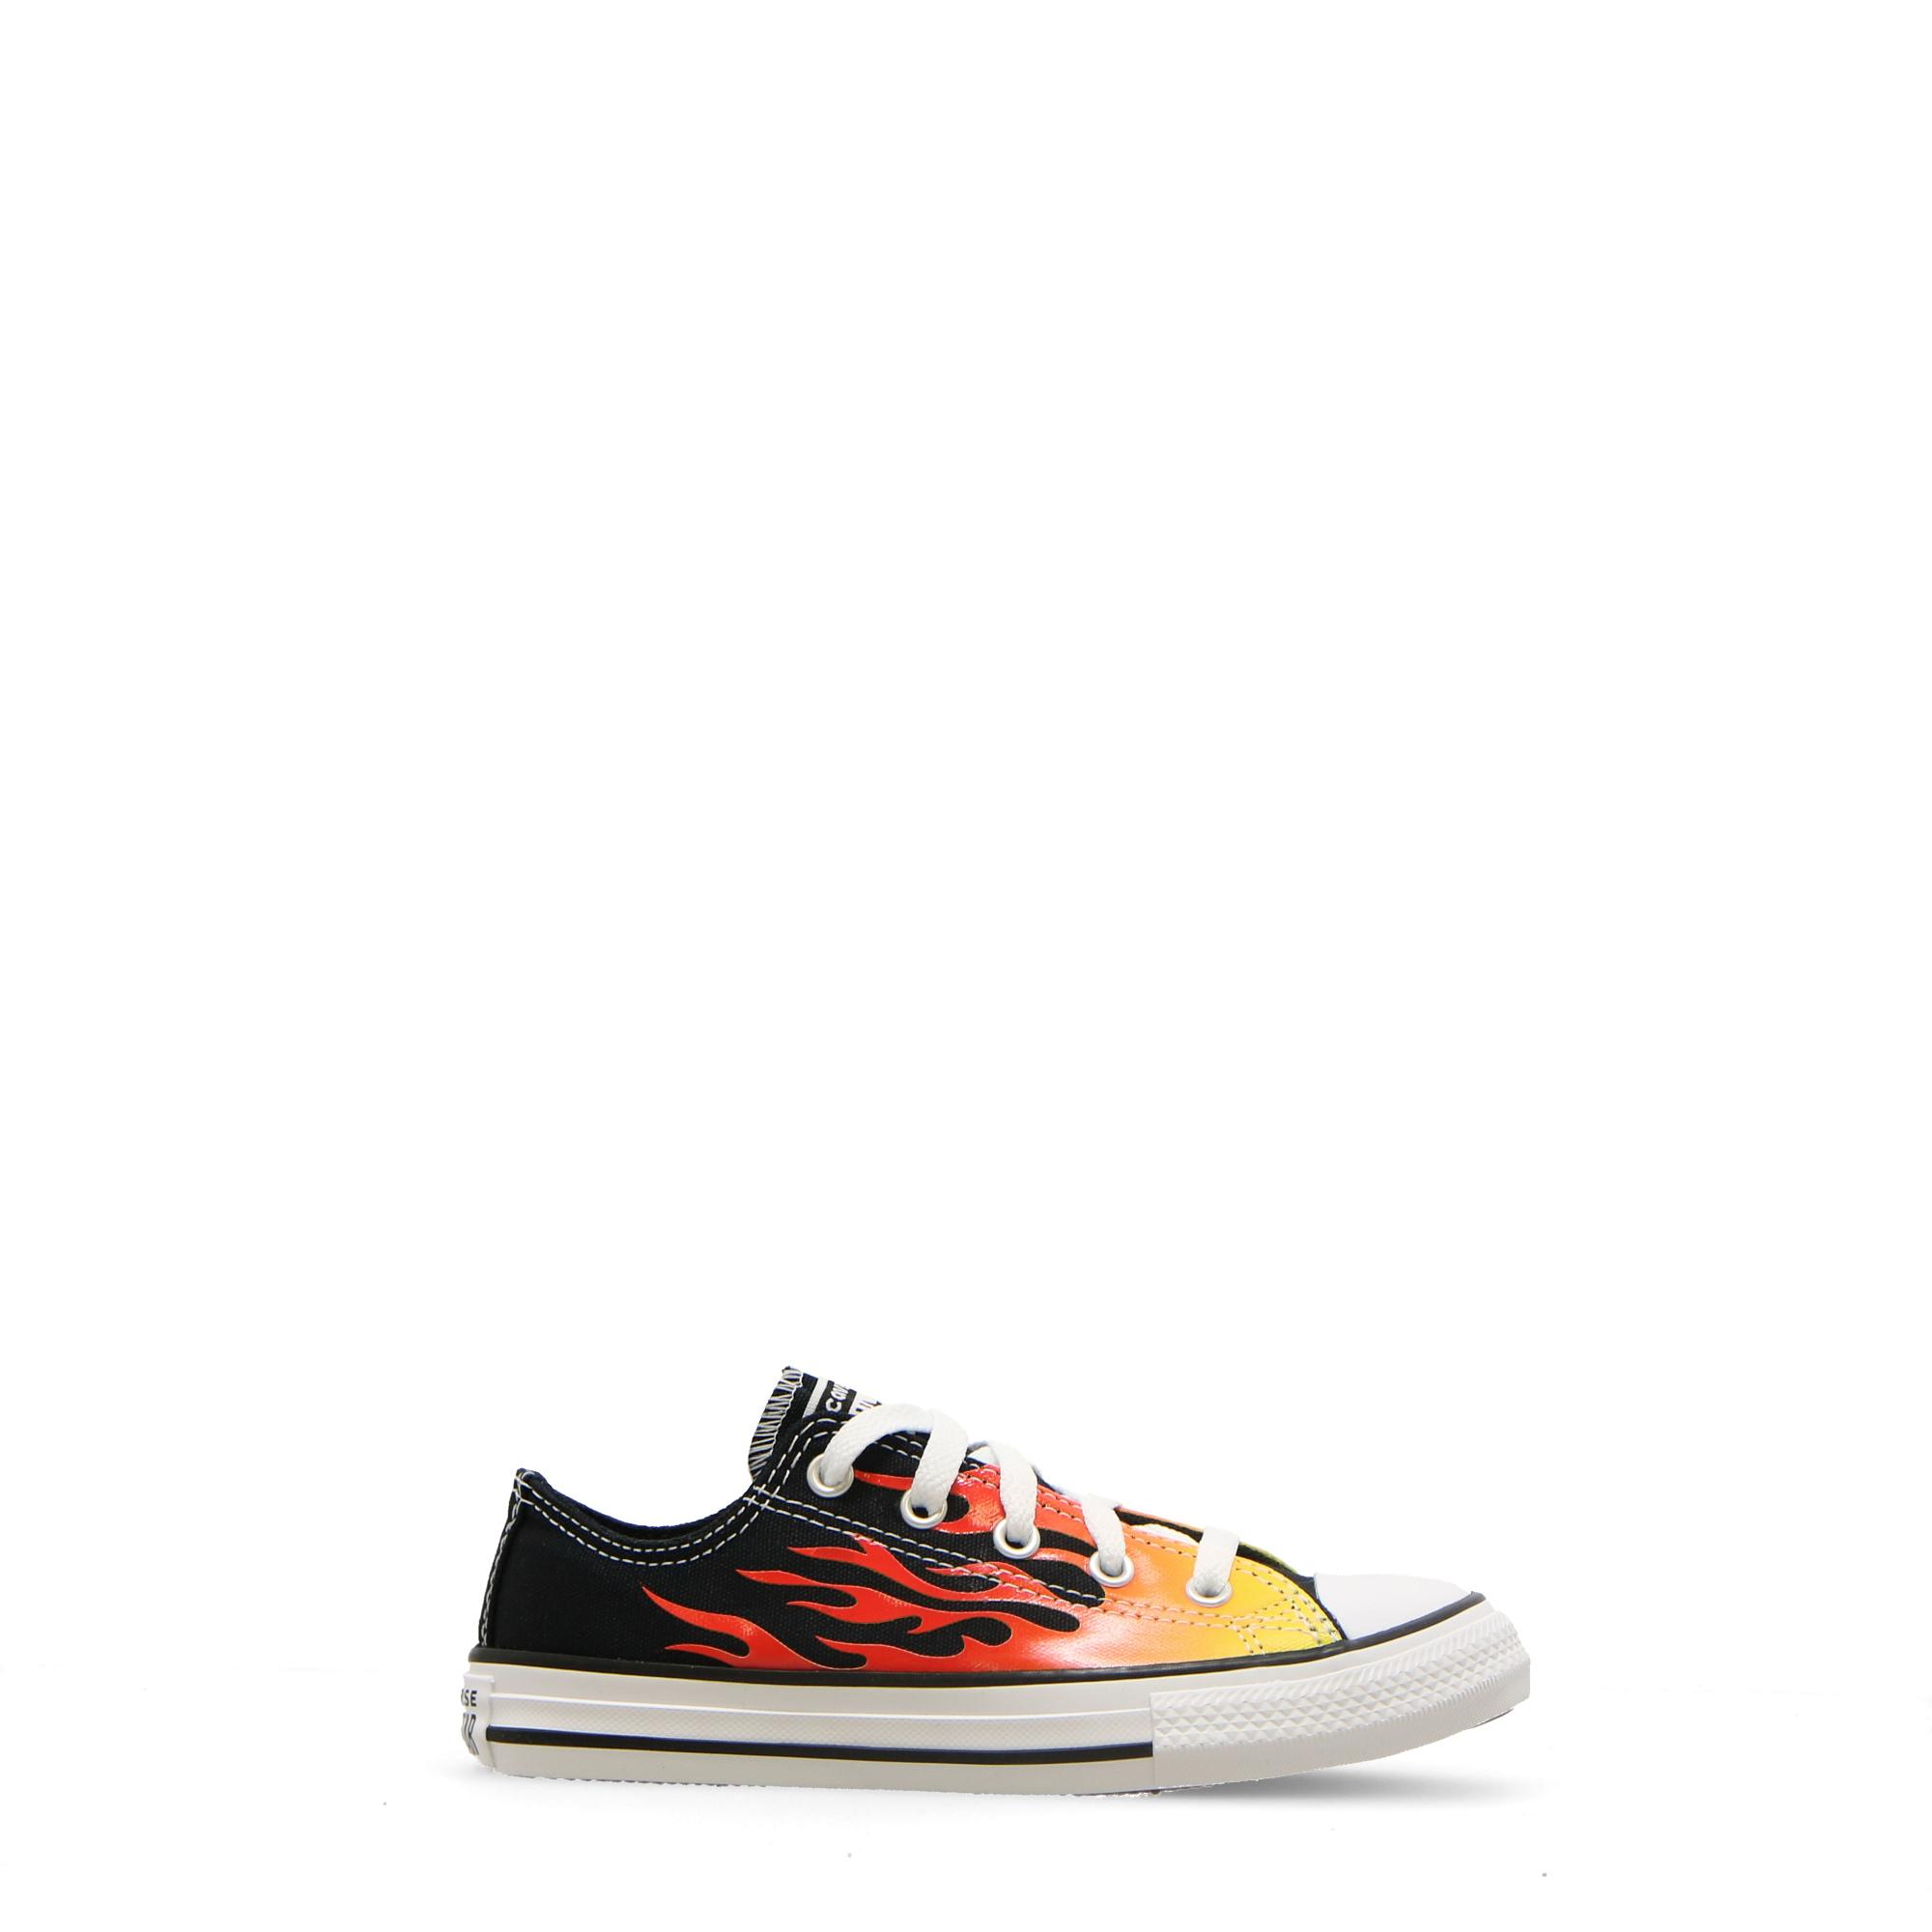 Converse Chuck Taylor All Star Archive Flame Ox Black enamel red fresh